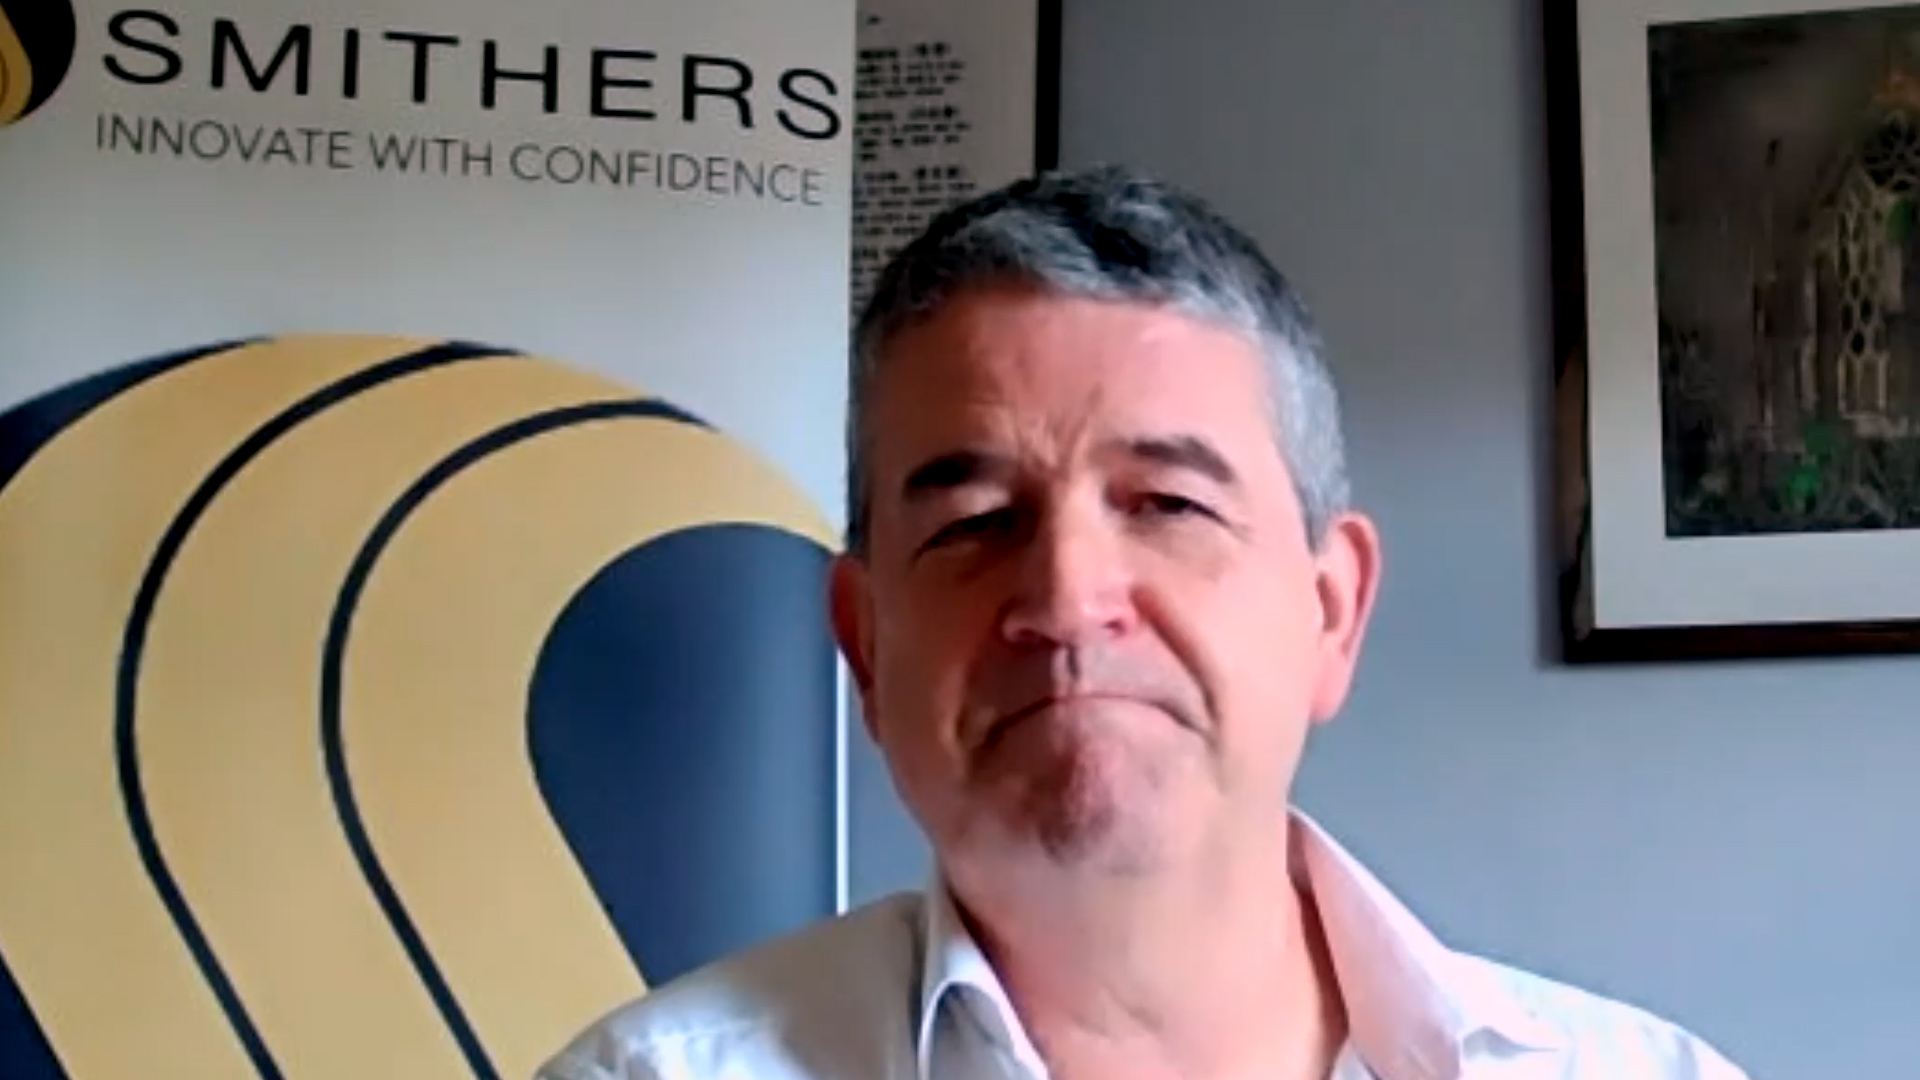 Smithers' Sean Smyth Talks About Digital Print for Packaging